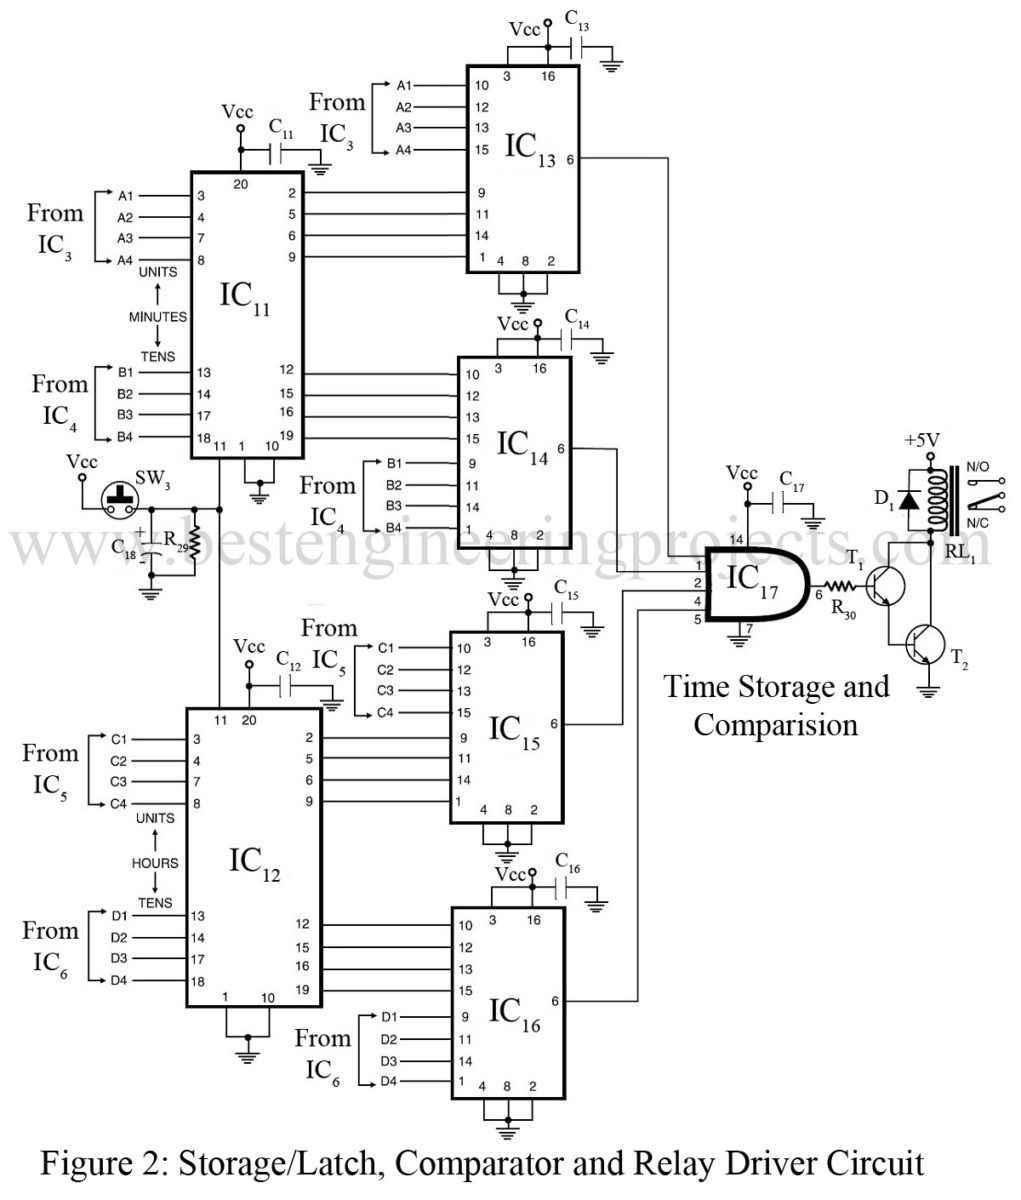 hight resolution of however we should note that bcd outputs of the four counter ics ic3 through ic6 have been terminated on sip connectors in the pcb